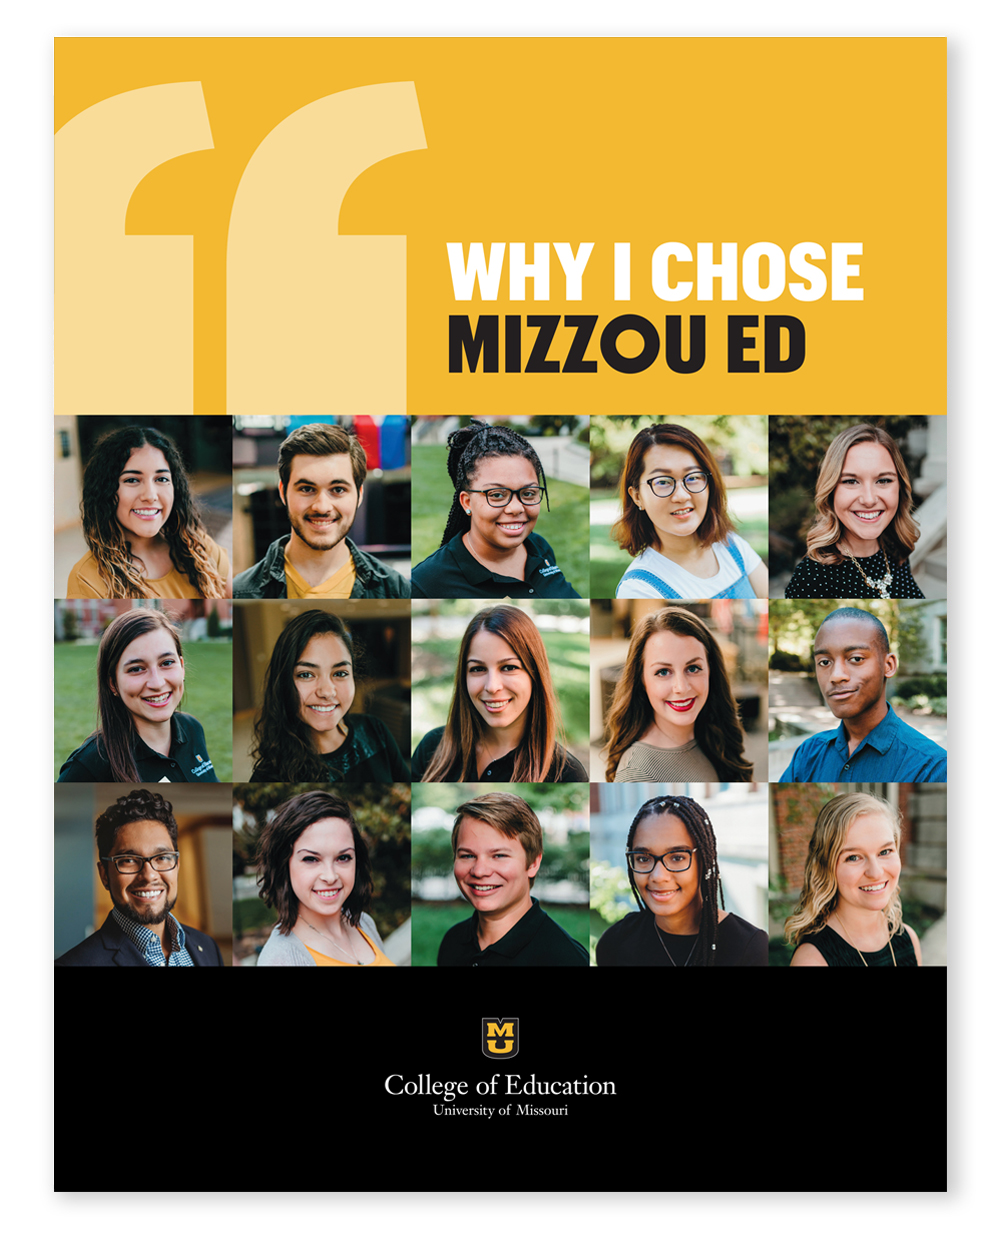 University of Missouri College of Education Viewbook, Why I Chose Mizzou Ed Booklet / Full Color Brochure 2018, Hear from current students on why they chose Mizzou Ed, student testimonials / quotes